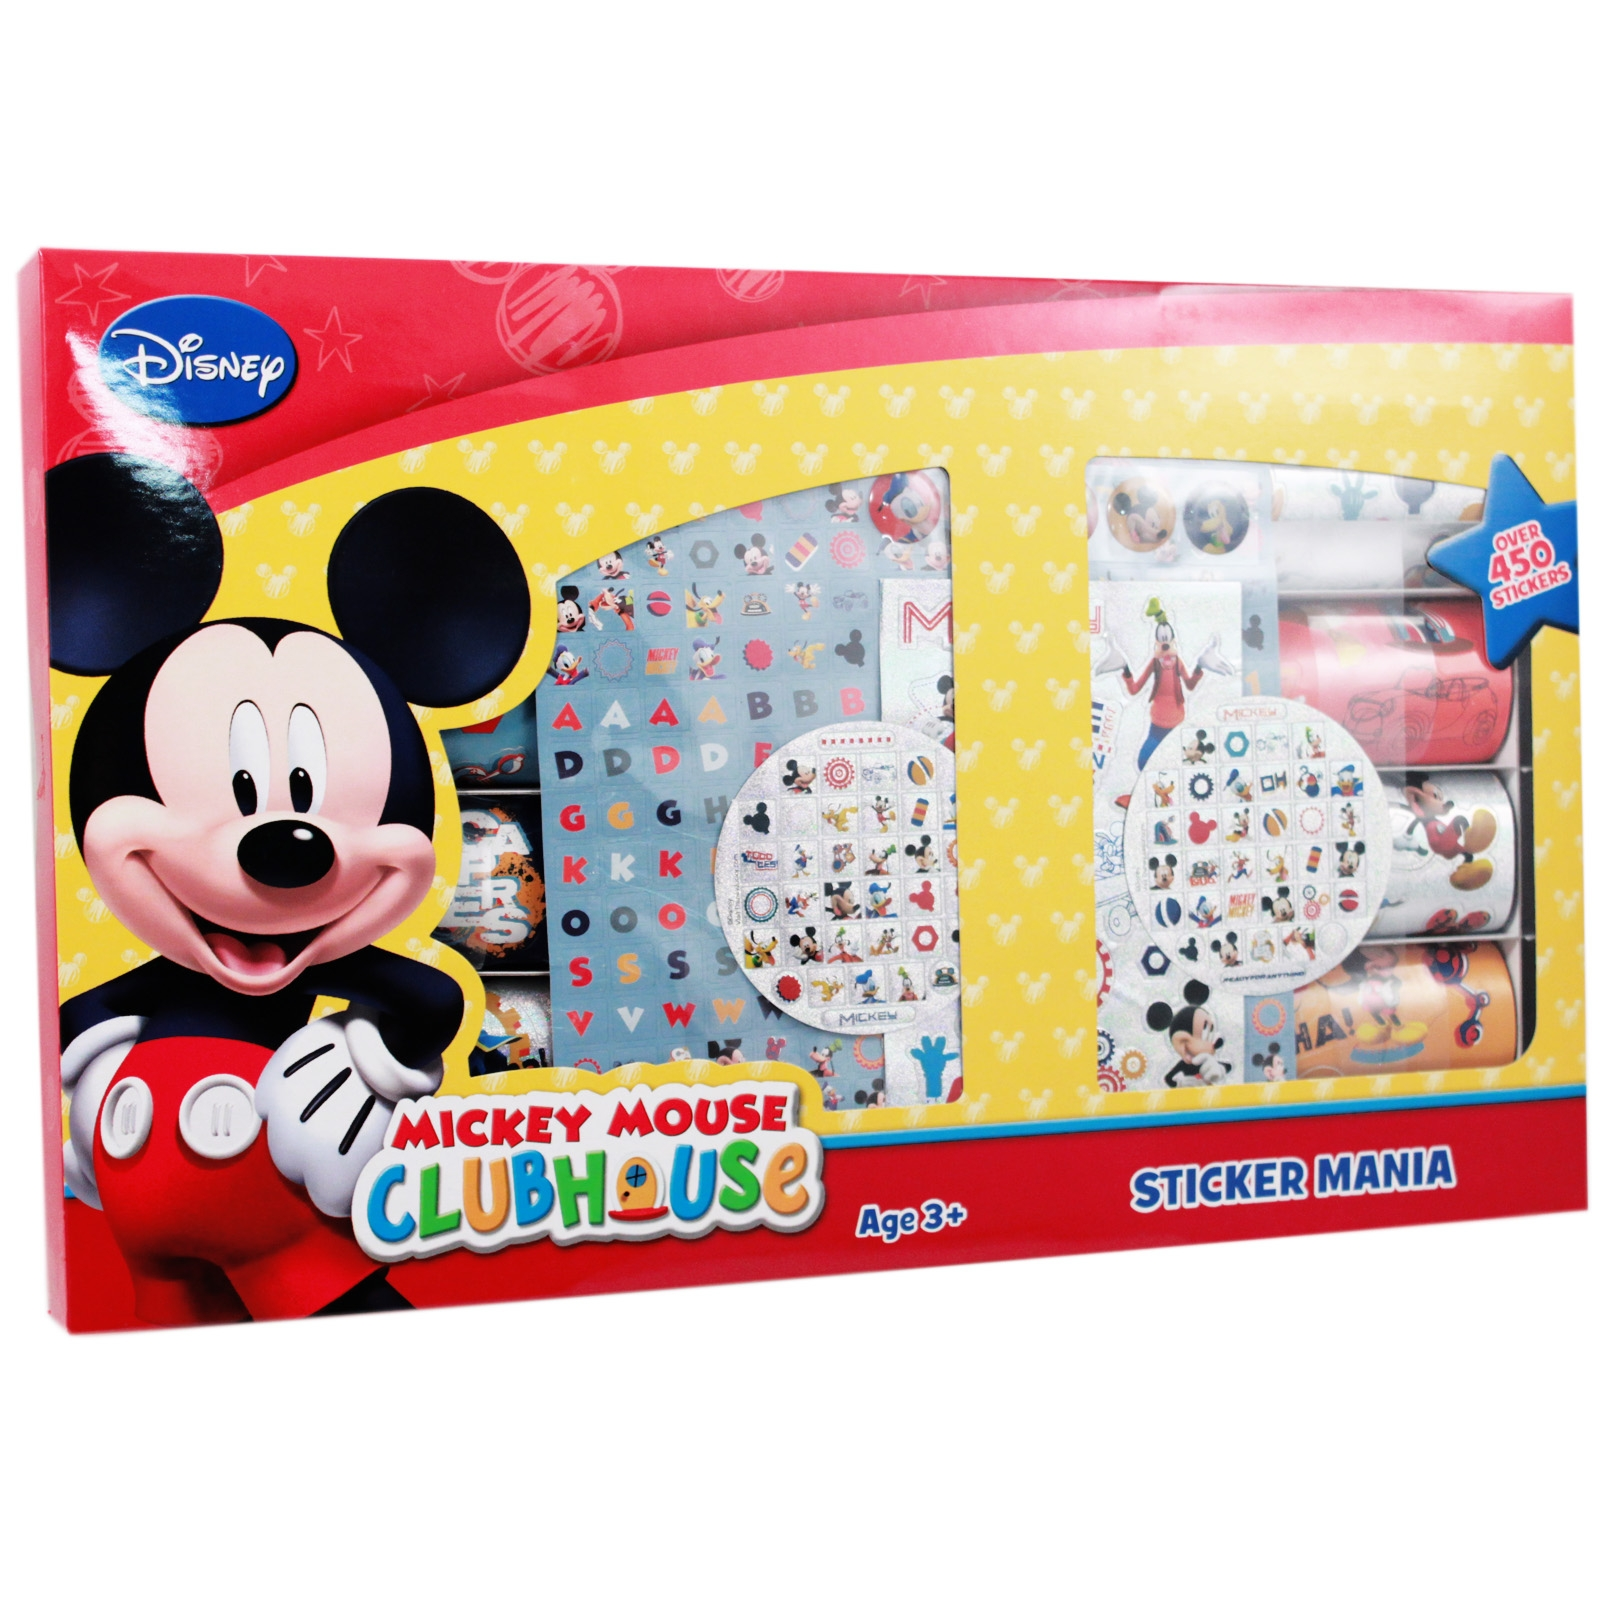 450pc Disney Junior Mickey Mouse Clubhouse Sticker Mania